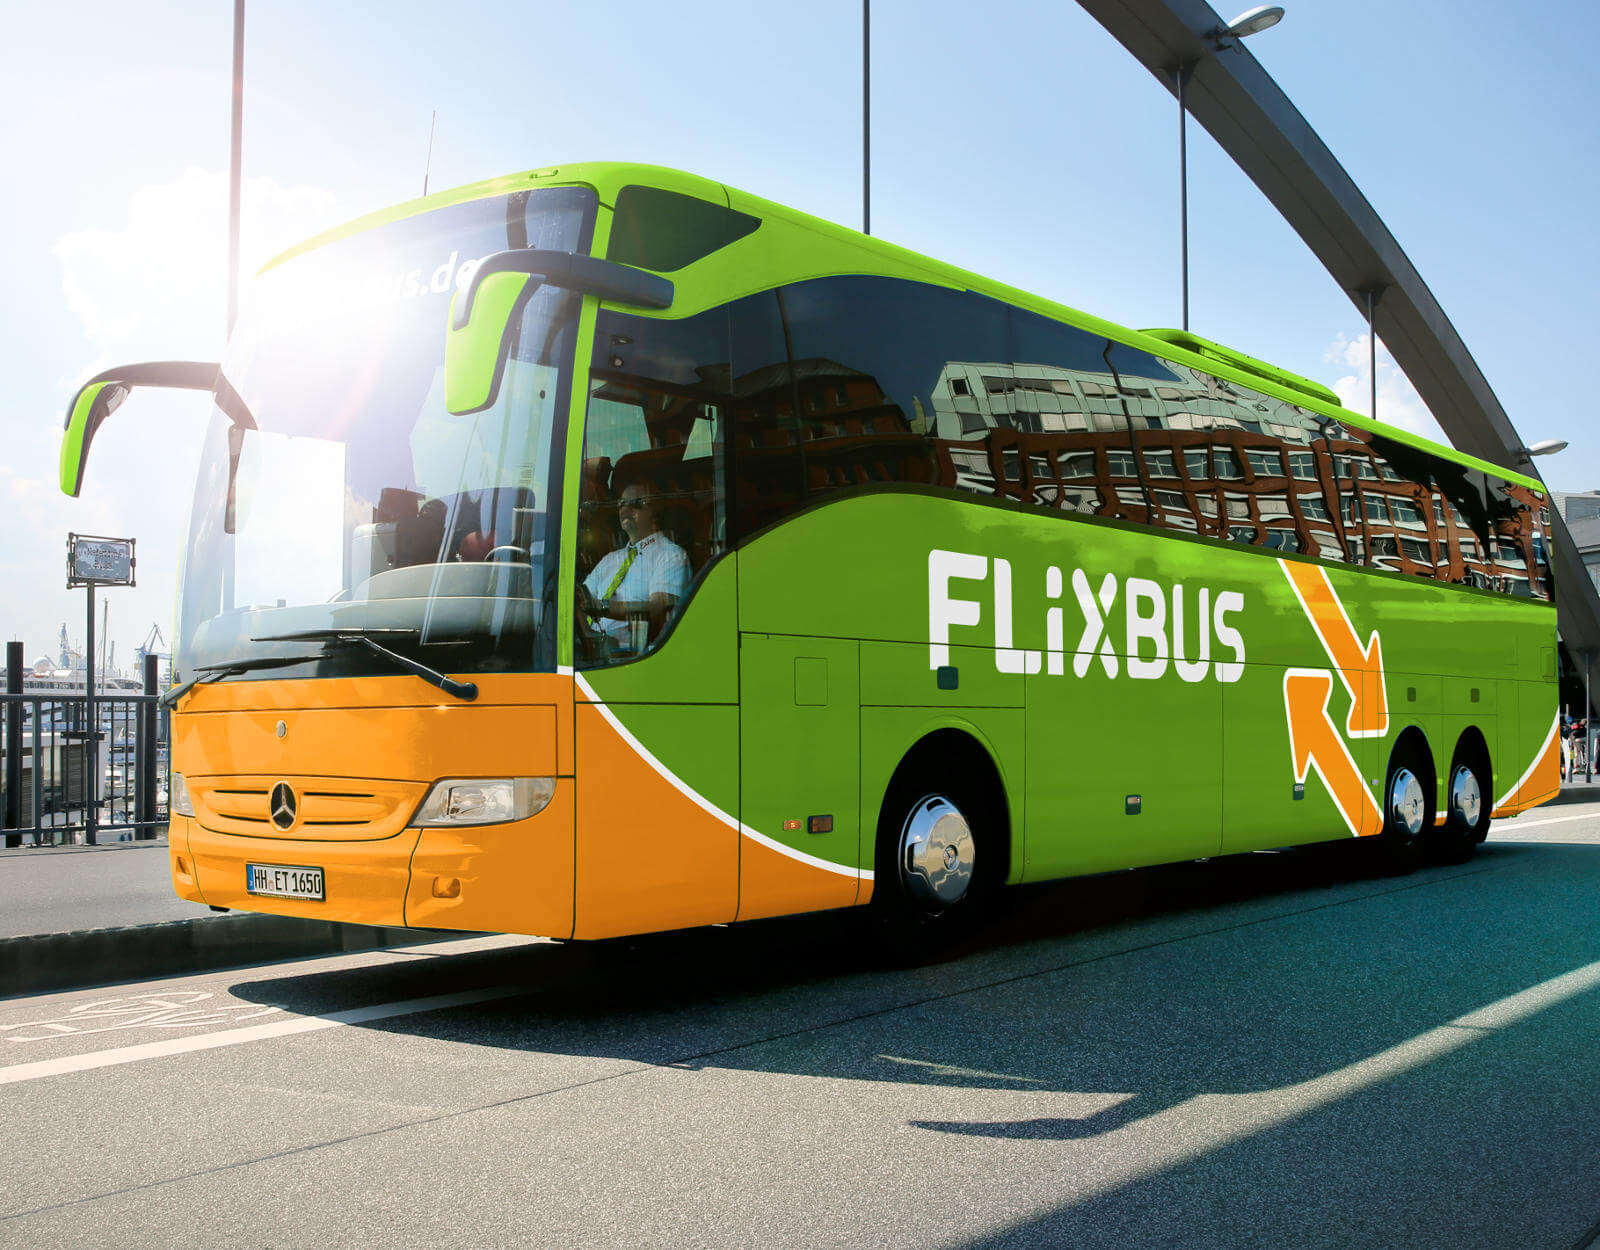 Babygalerie Braunschweig All Bus Destinations Book Your Bus Tickets From 2 99 Flixbus